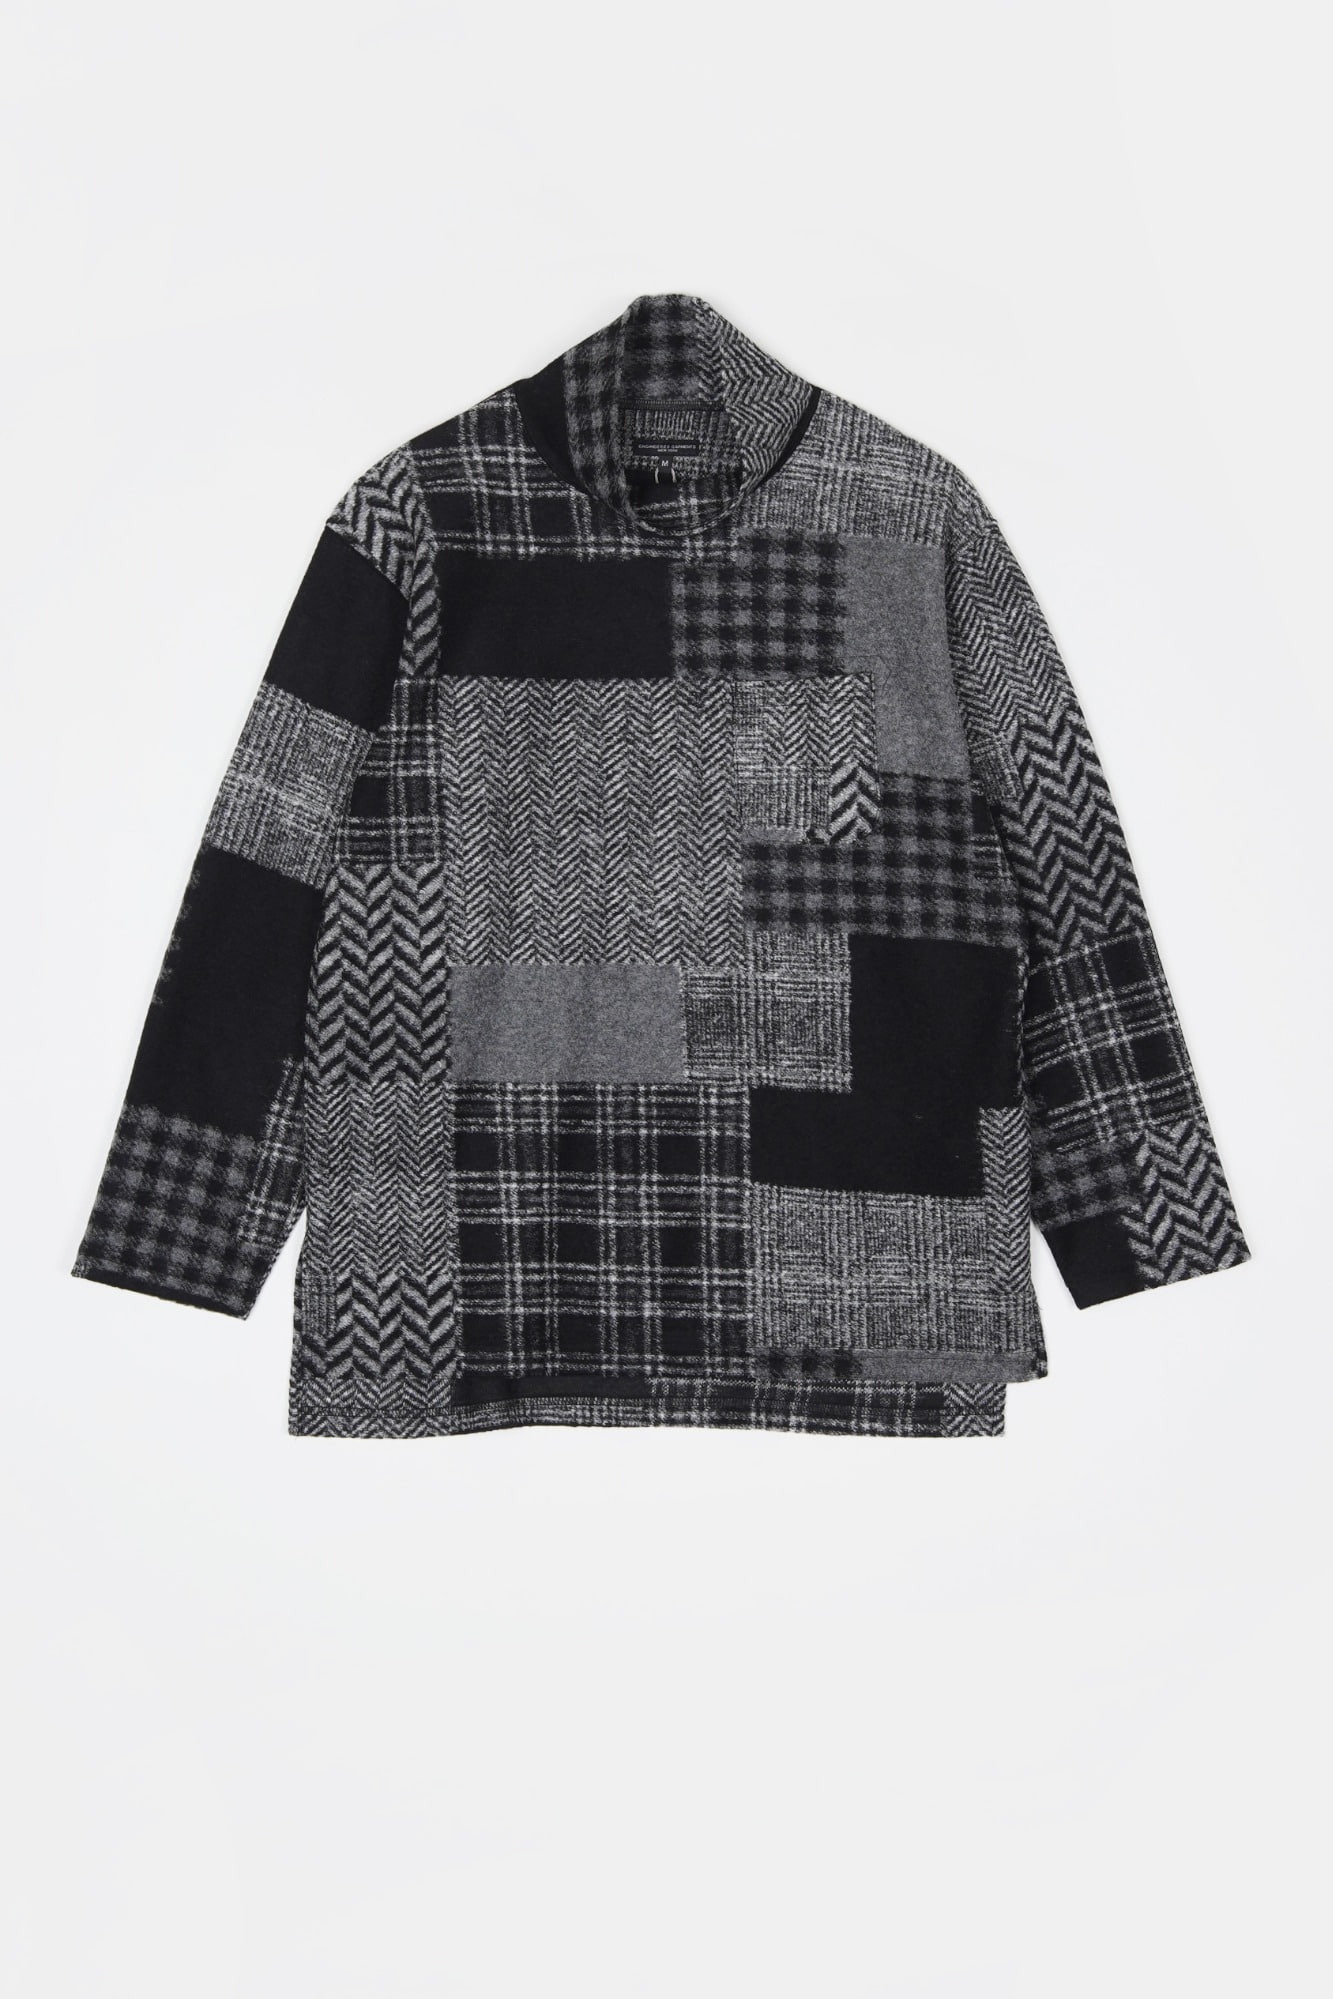 "ENGINEERED GARMENTS Mock Turtle ""Black/Grey Knit Patchwork Herringbone"""